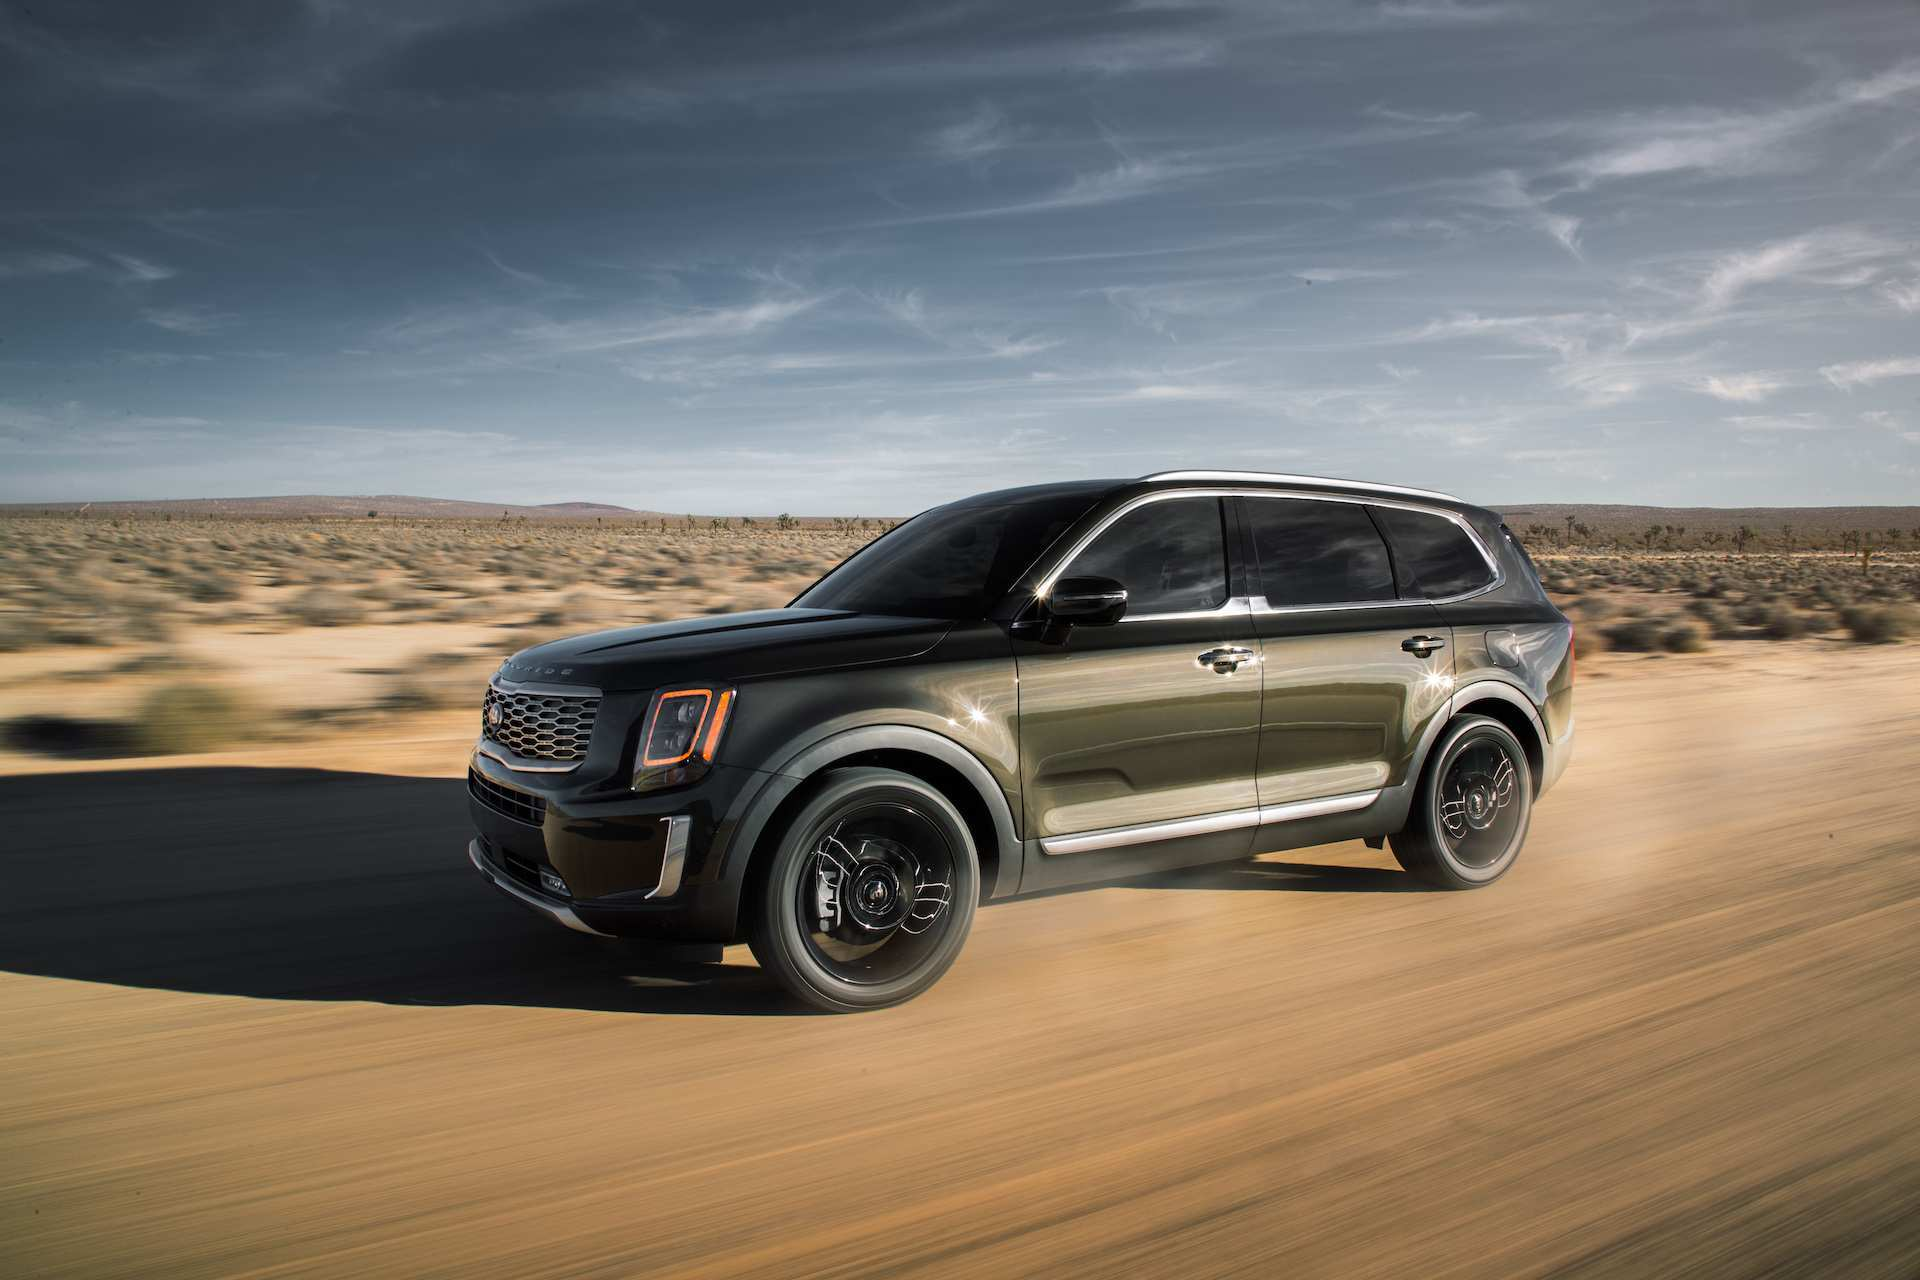 74 Great 2020 Kia Telluride Dimensions Redesign with 2020 Kia Telluride Dimensions